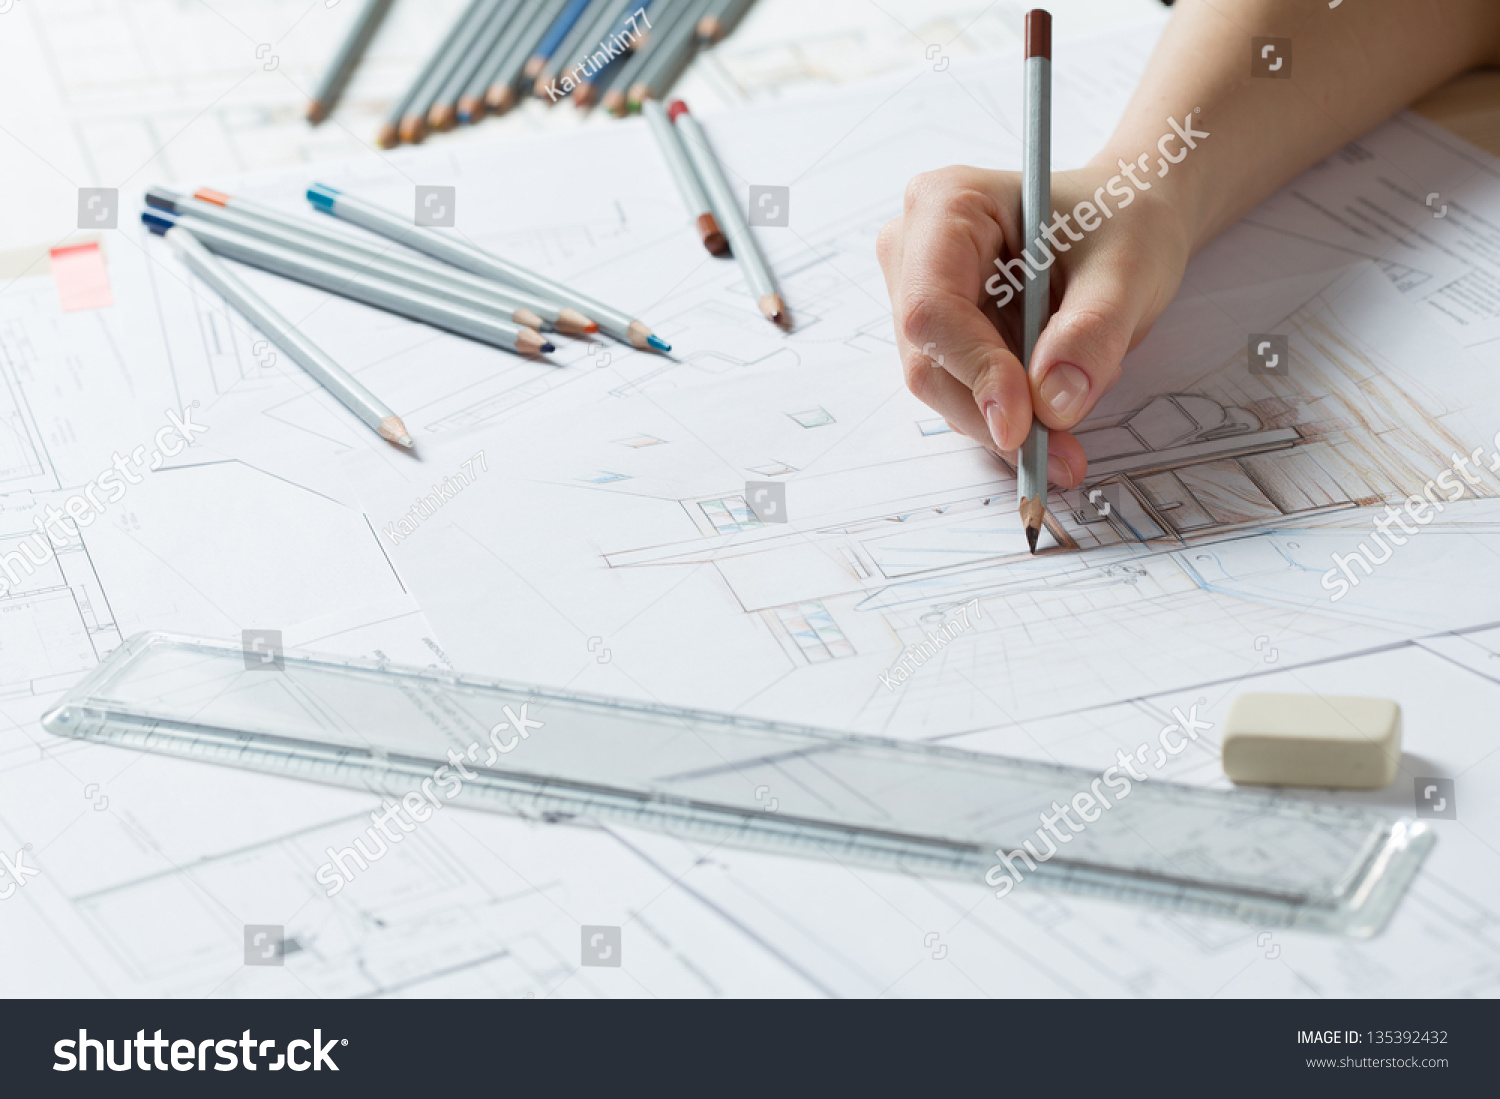 Interior Designer Works On A Hand Drawing Sketch Using Color